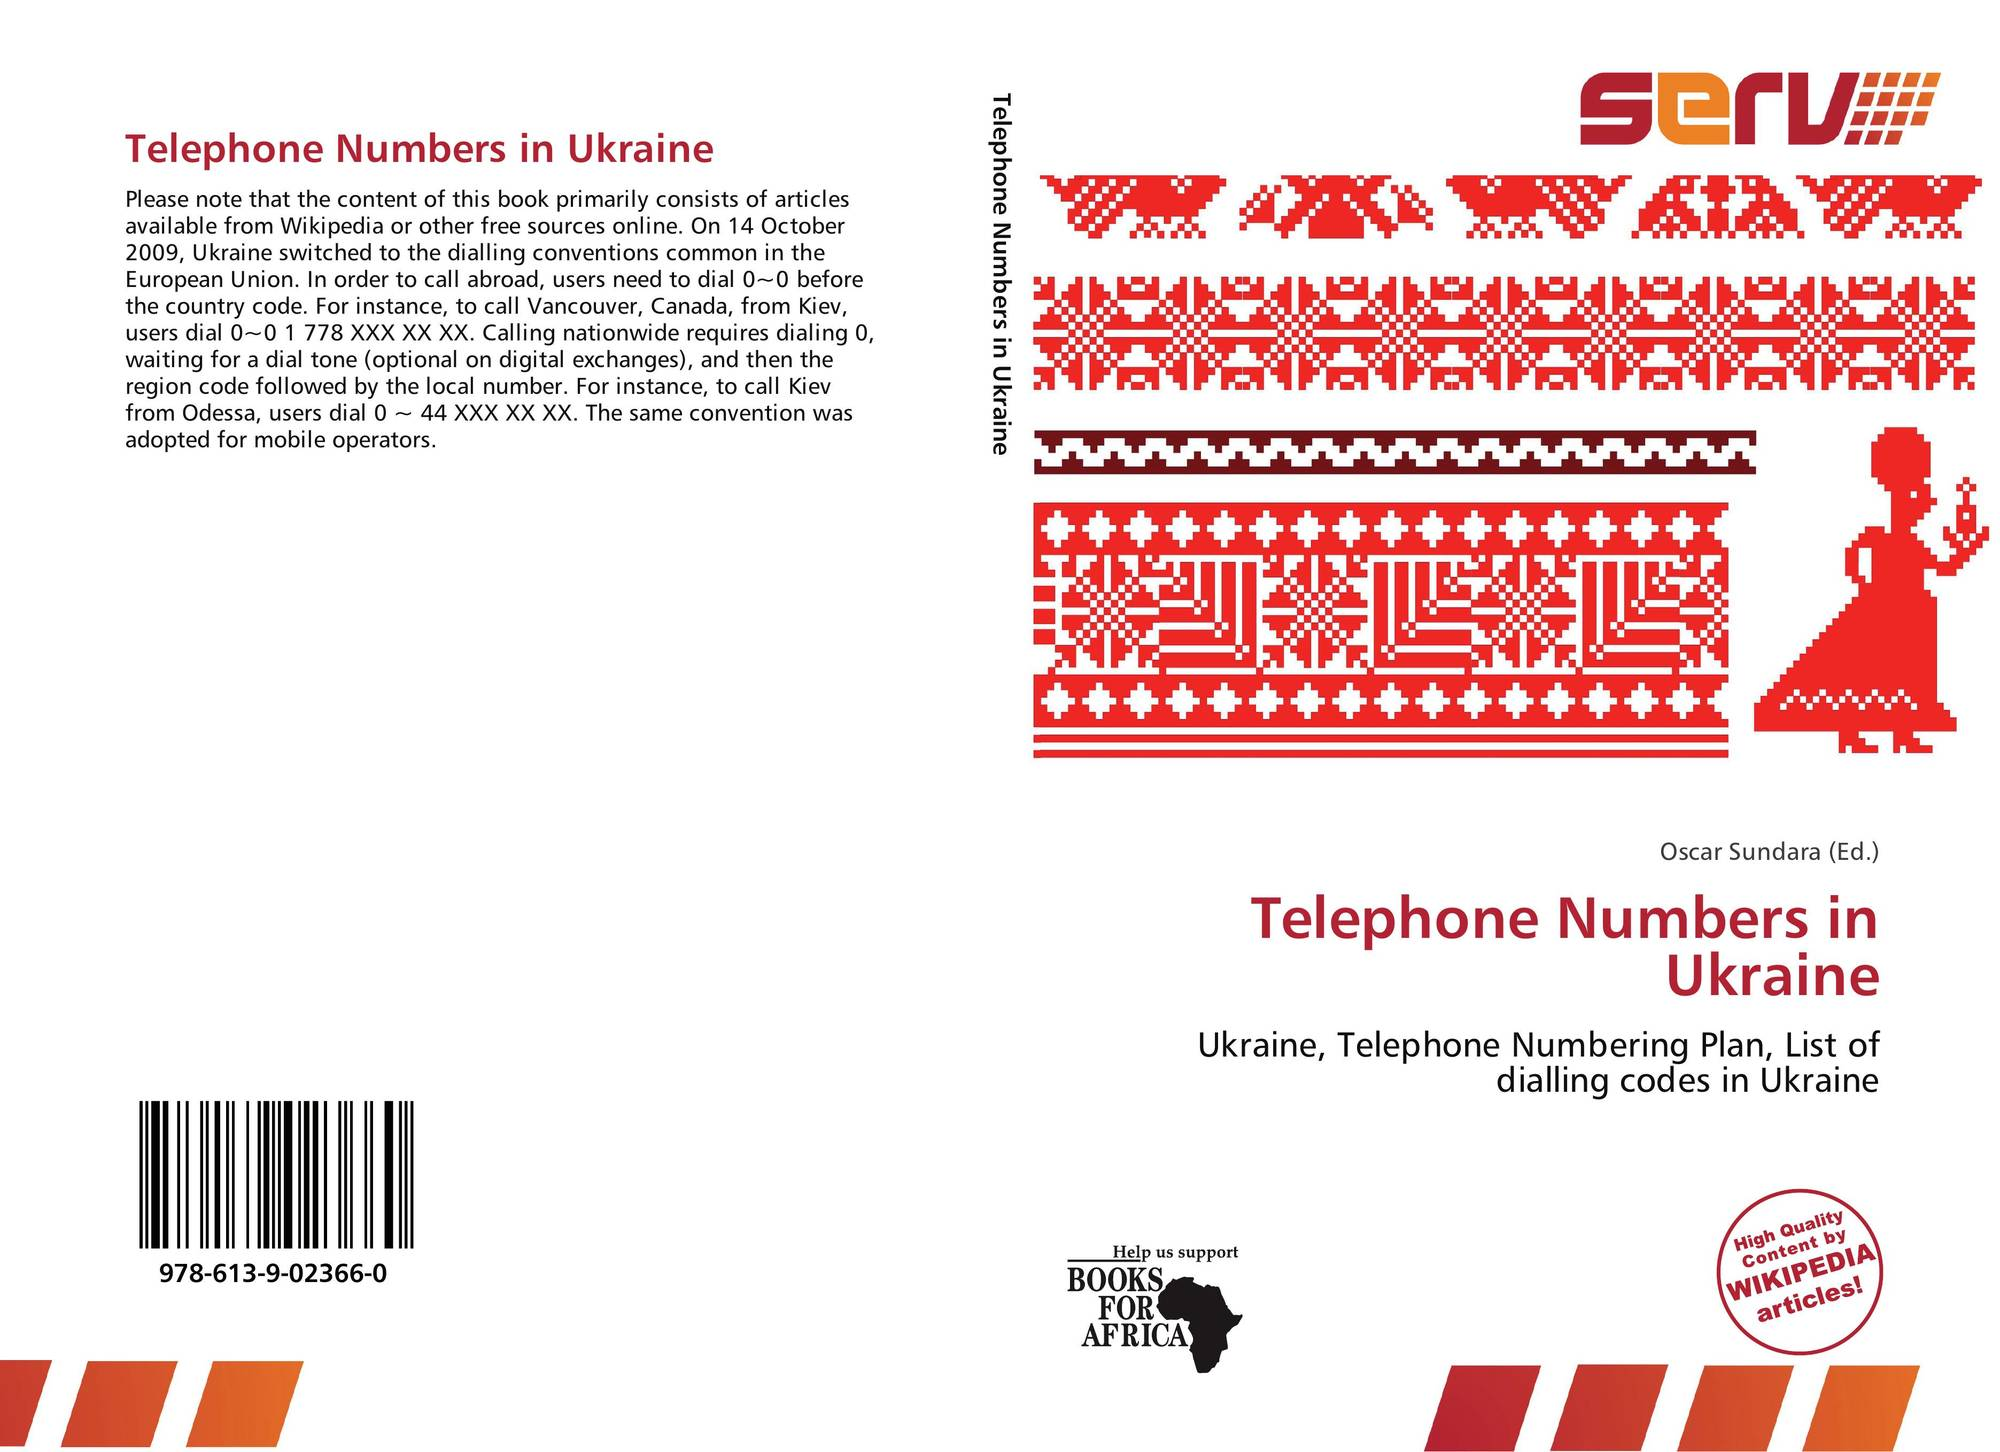 Telephone directories of Ukraine, Russia: a selection of sites